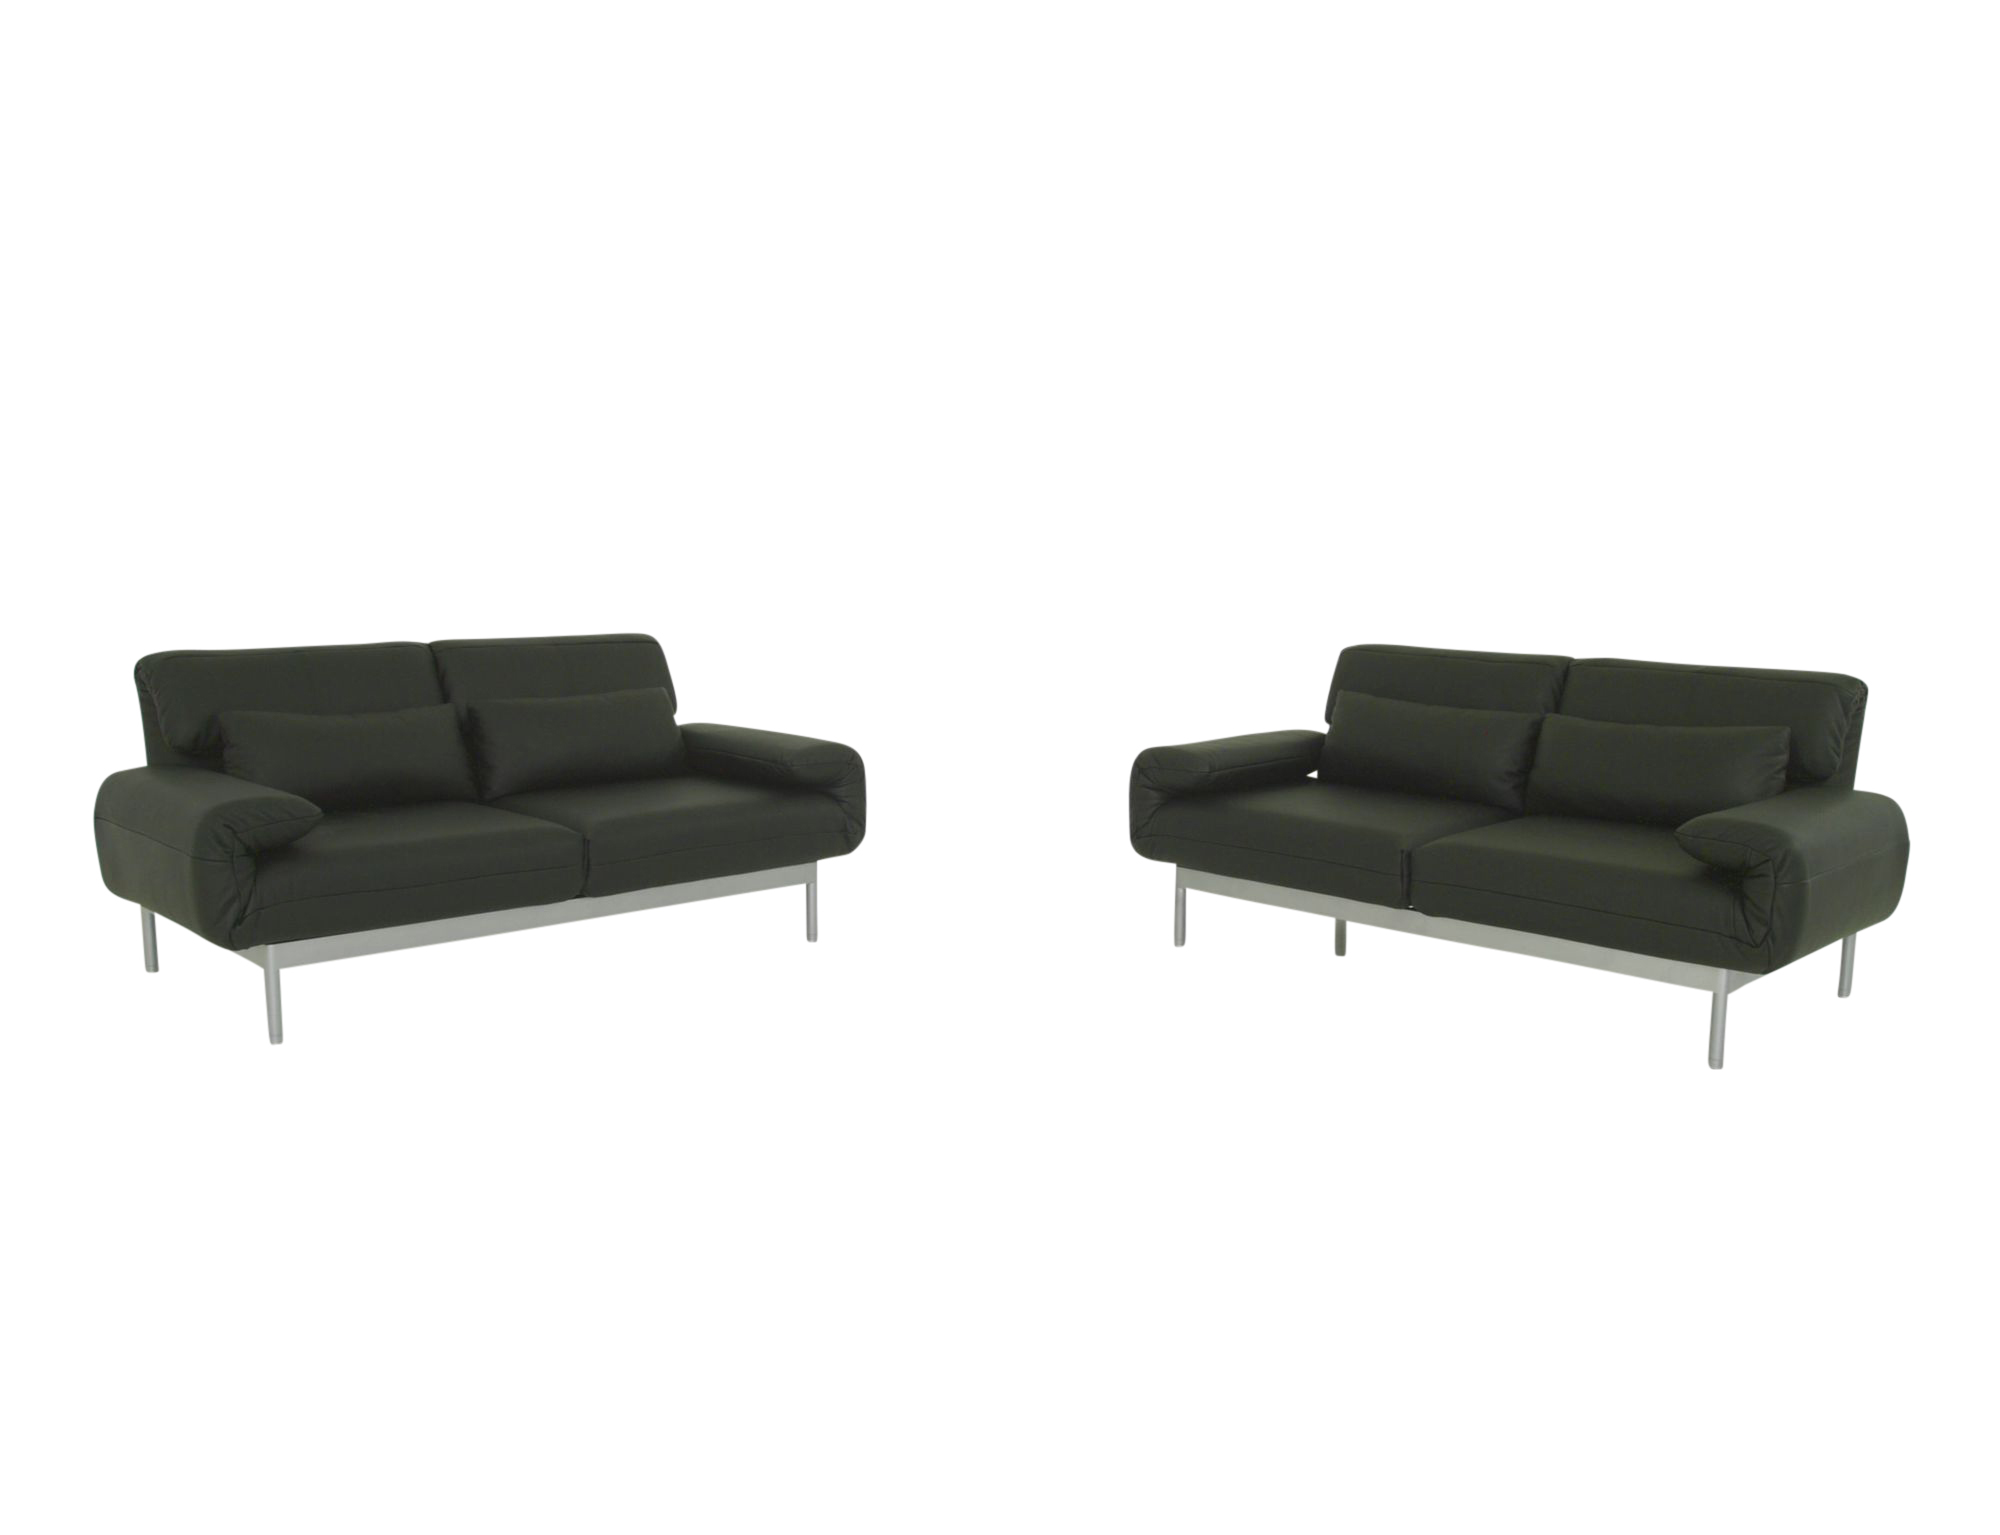 plura rolf benz sofas g nstig online kaufen. Black Bedroom Furniture Sets. Home Design Ideas